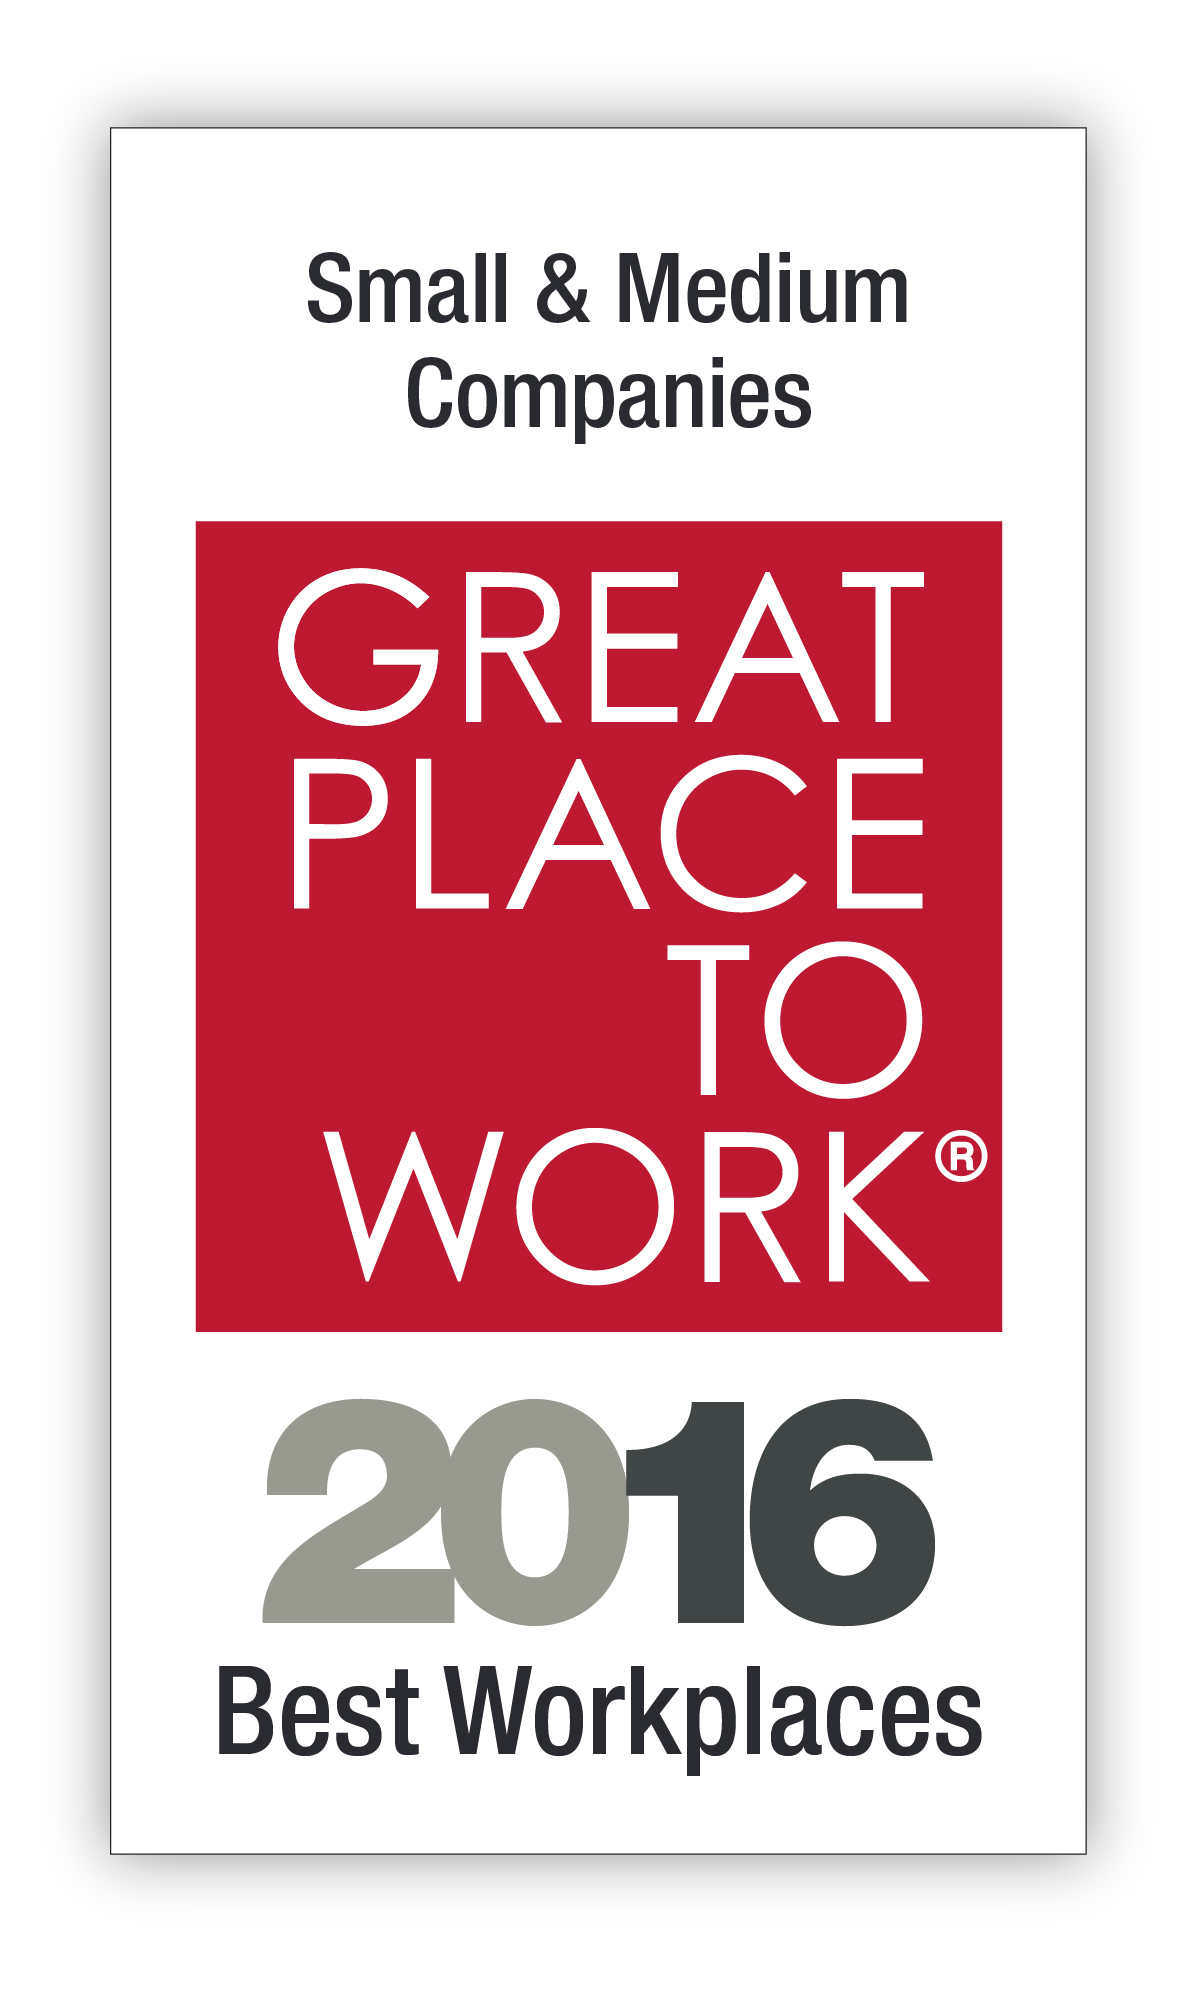 Best Small & Medium Workplaces